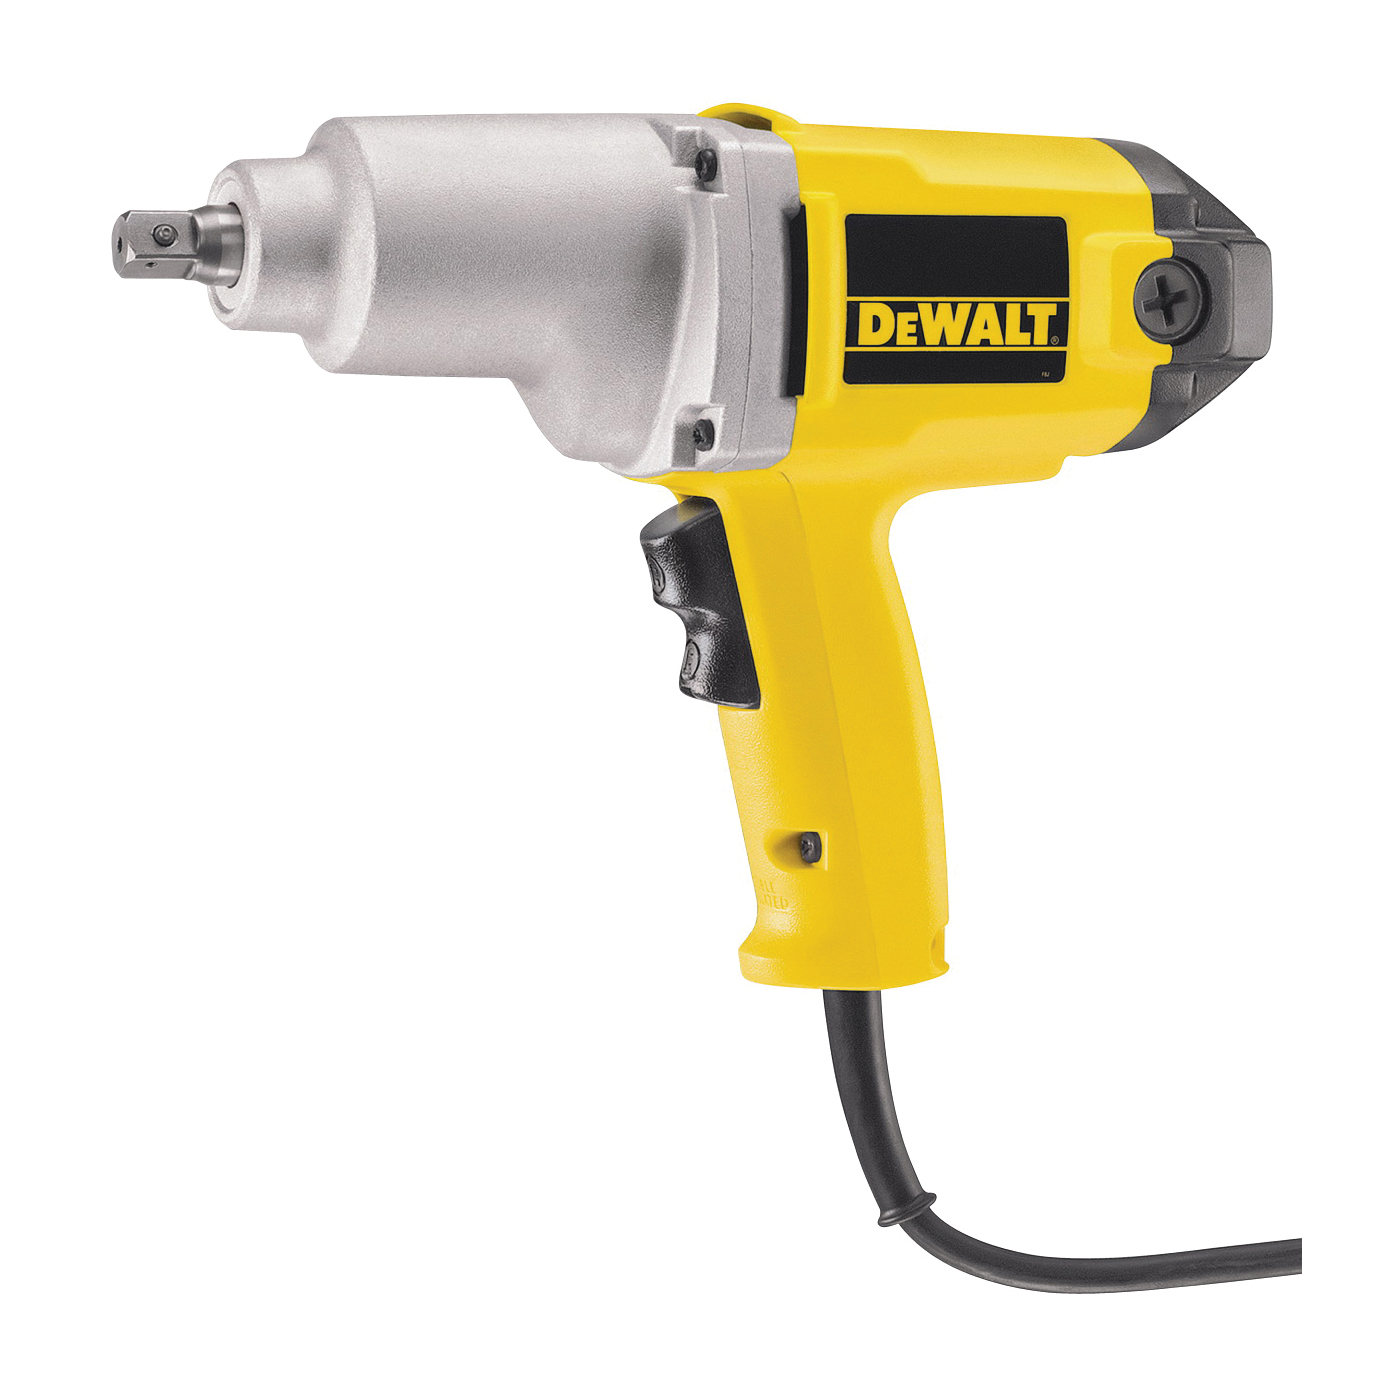 Picture of DeWALT DW292 Impact Wrench with Detent Pin Anvil, 120 V, 1/2 in Drive, Square Drive, 345 ft-lb, 2100 rpm Speed